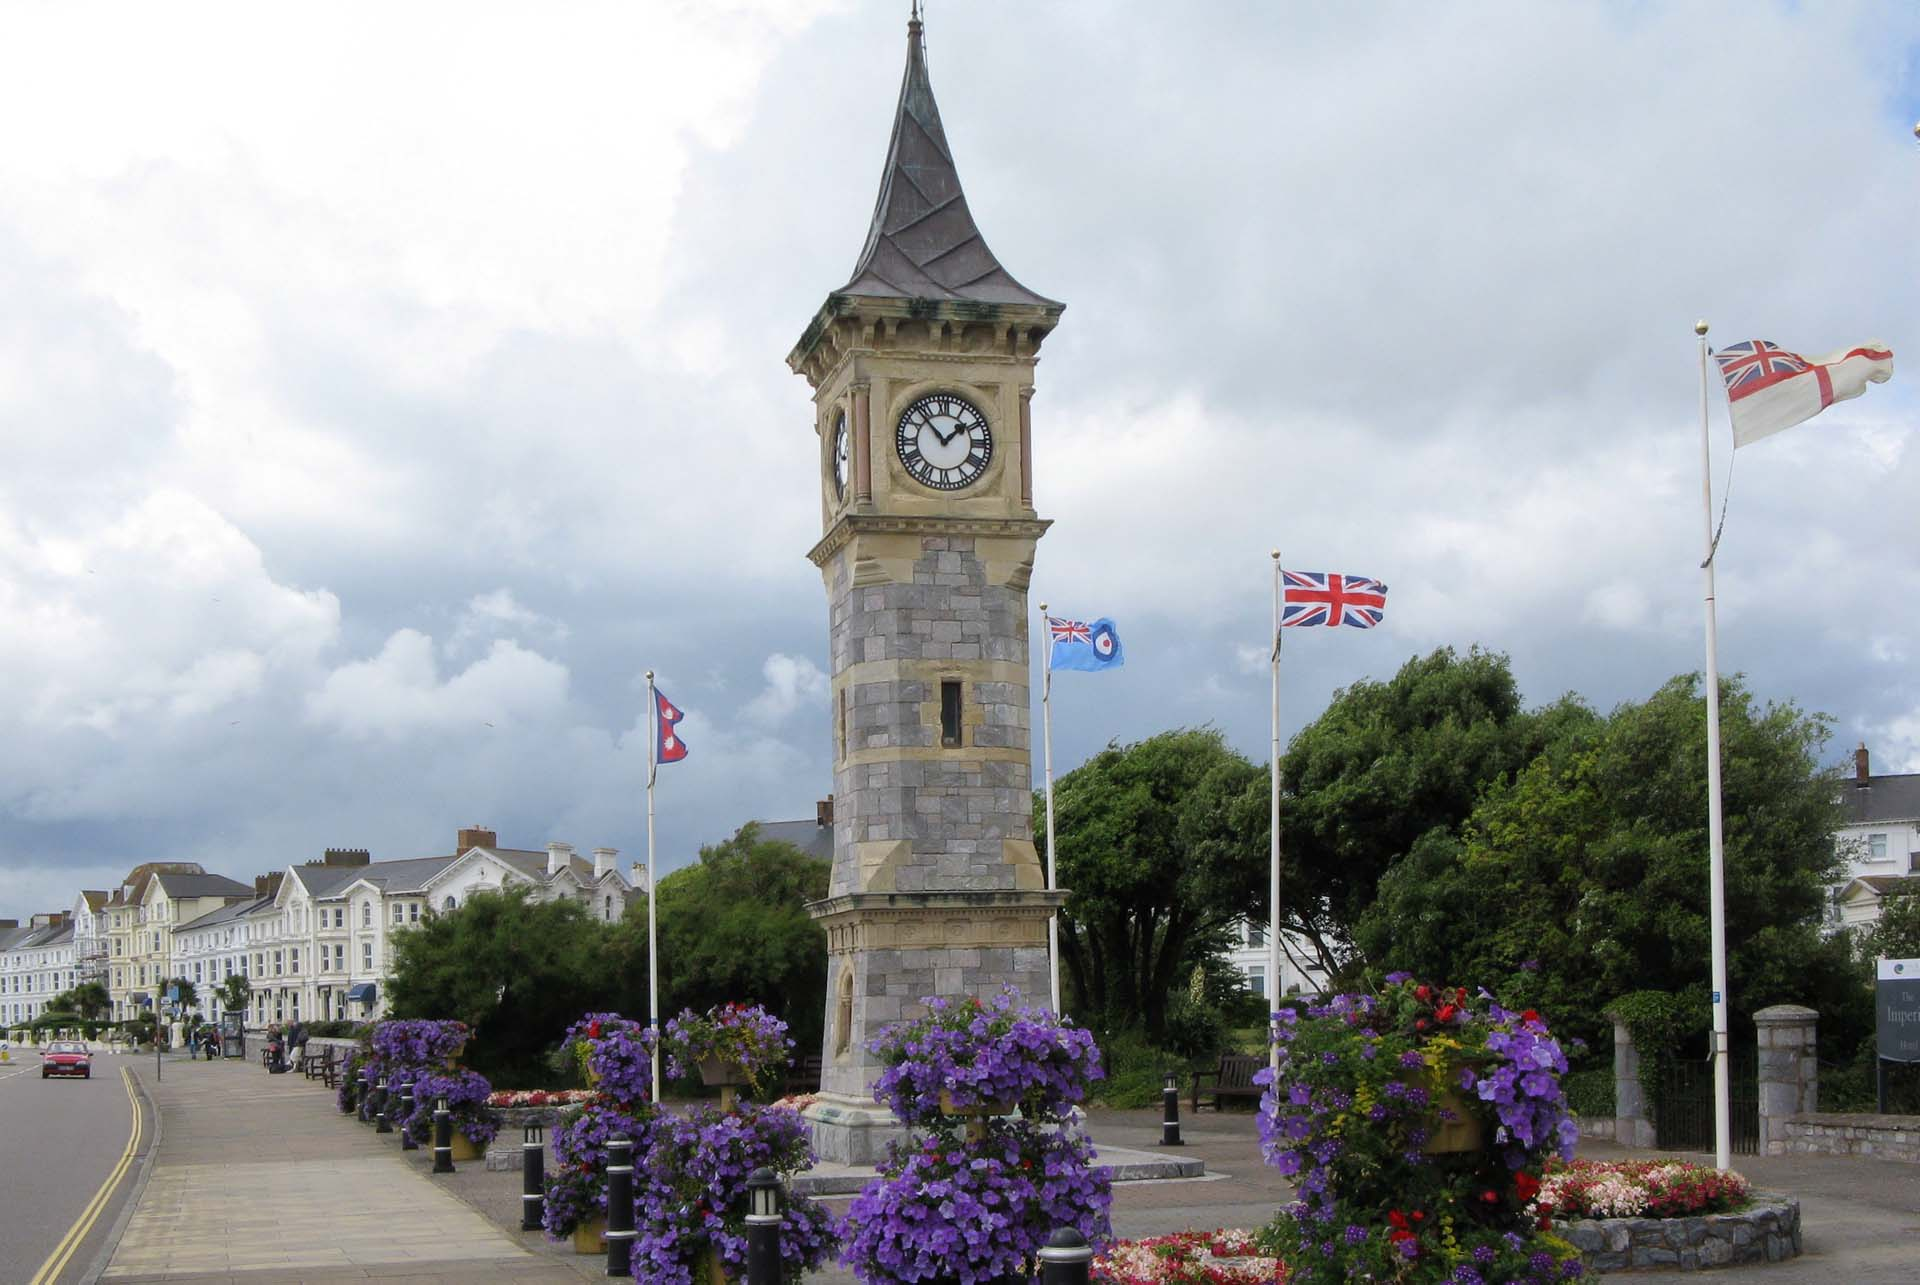 Exmouth_clock_1920